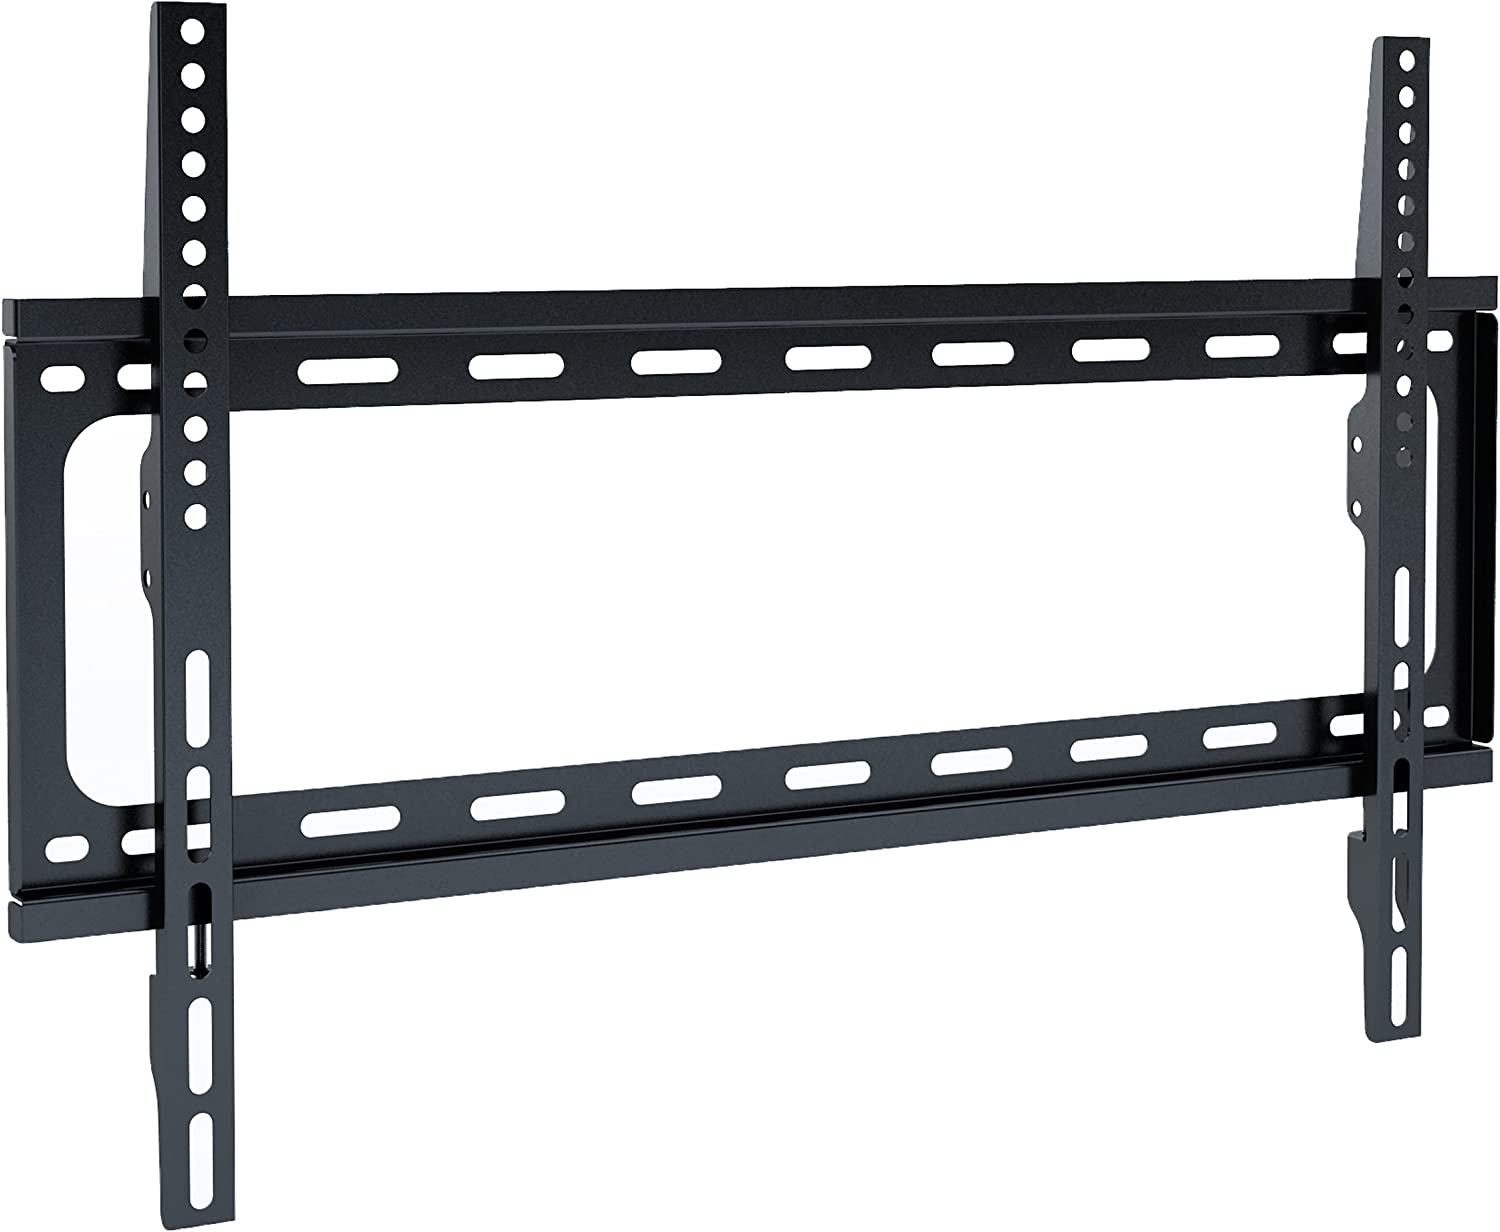 CorLiving F-102-MTM Fixed Flat Panel All Mount for TV, 32-Inch to 55-Inch